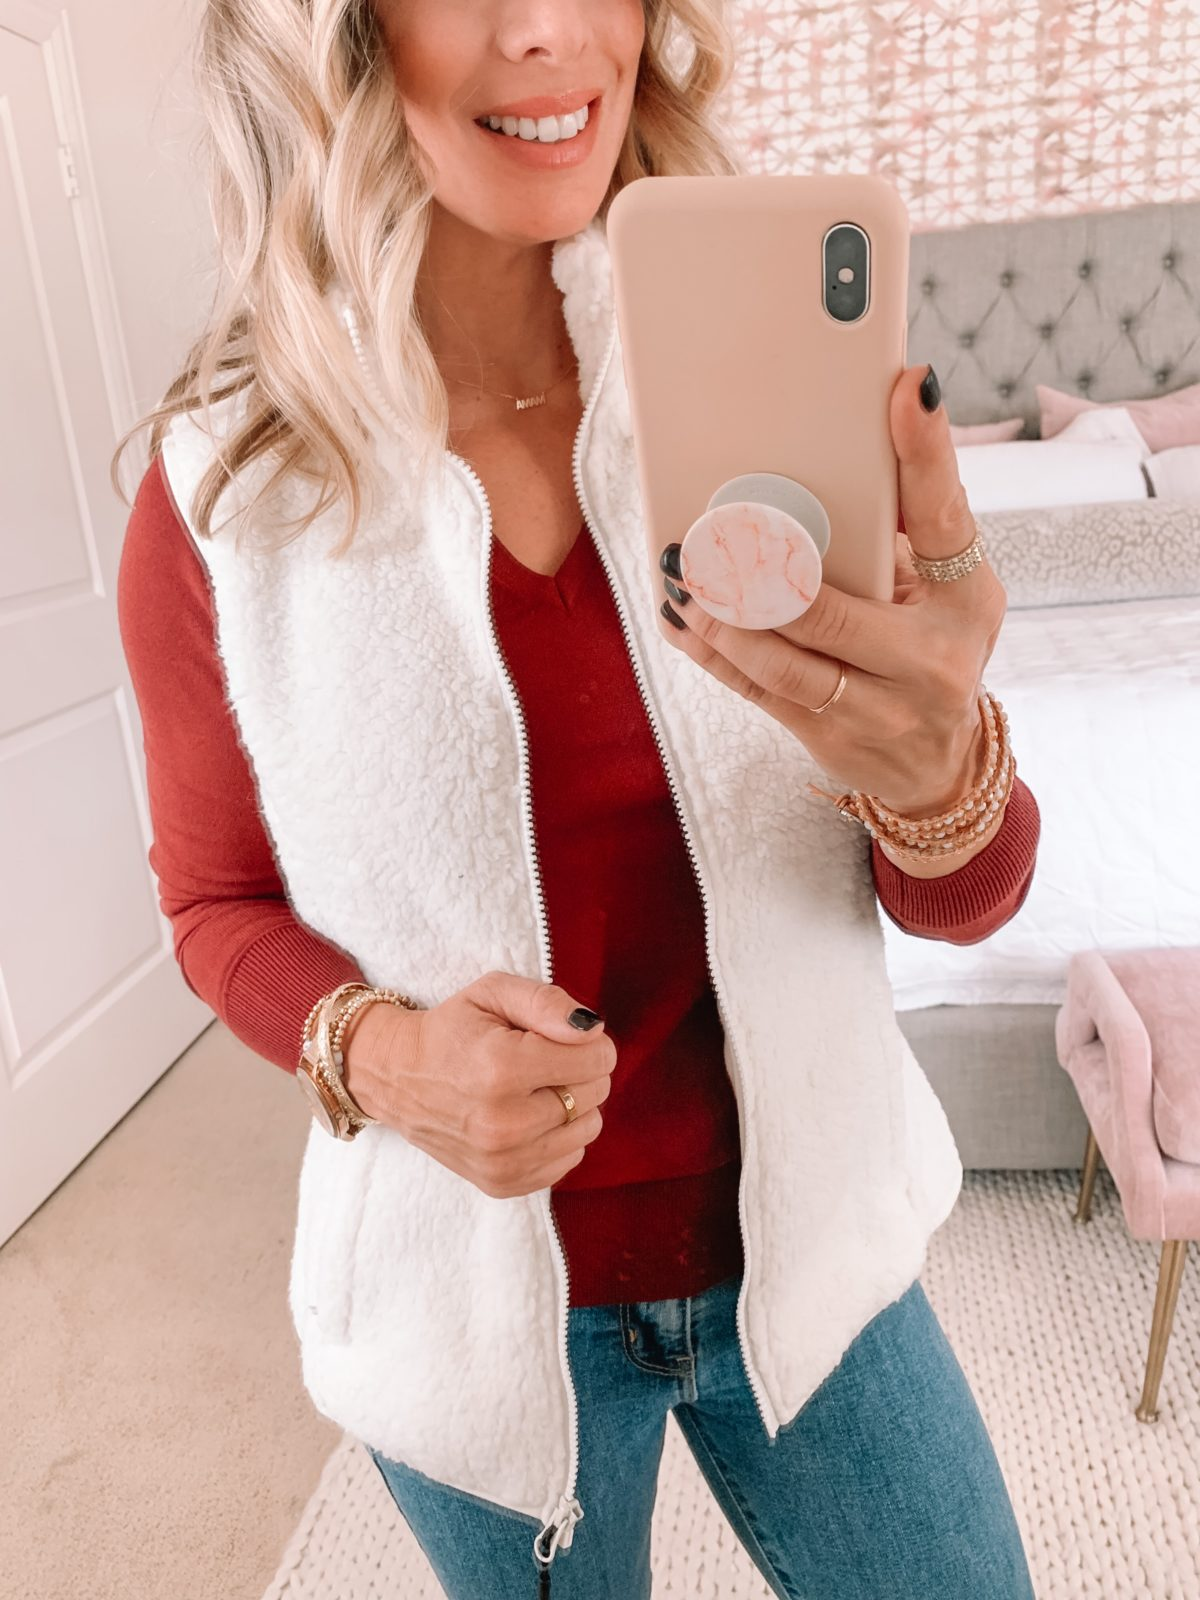 Amazon Fashion Faves, Fleece Vest, Red Long Sleeve Top, Jeans